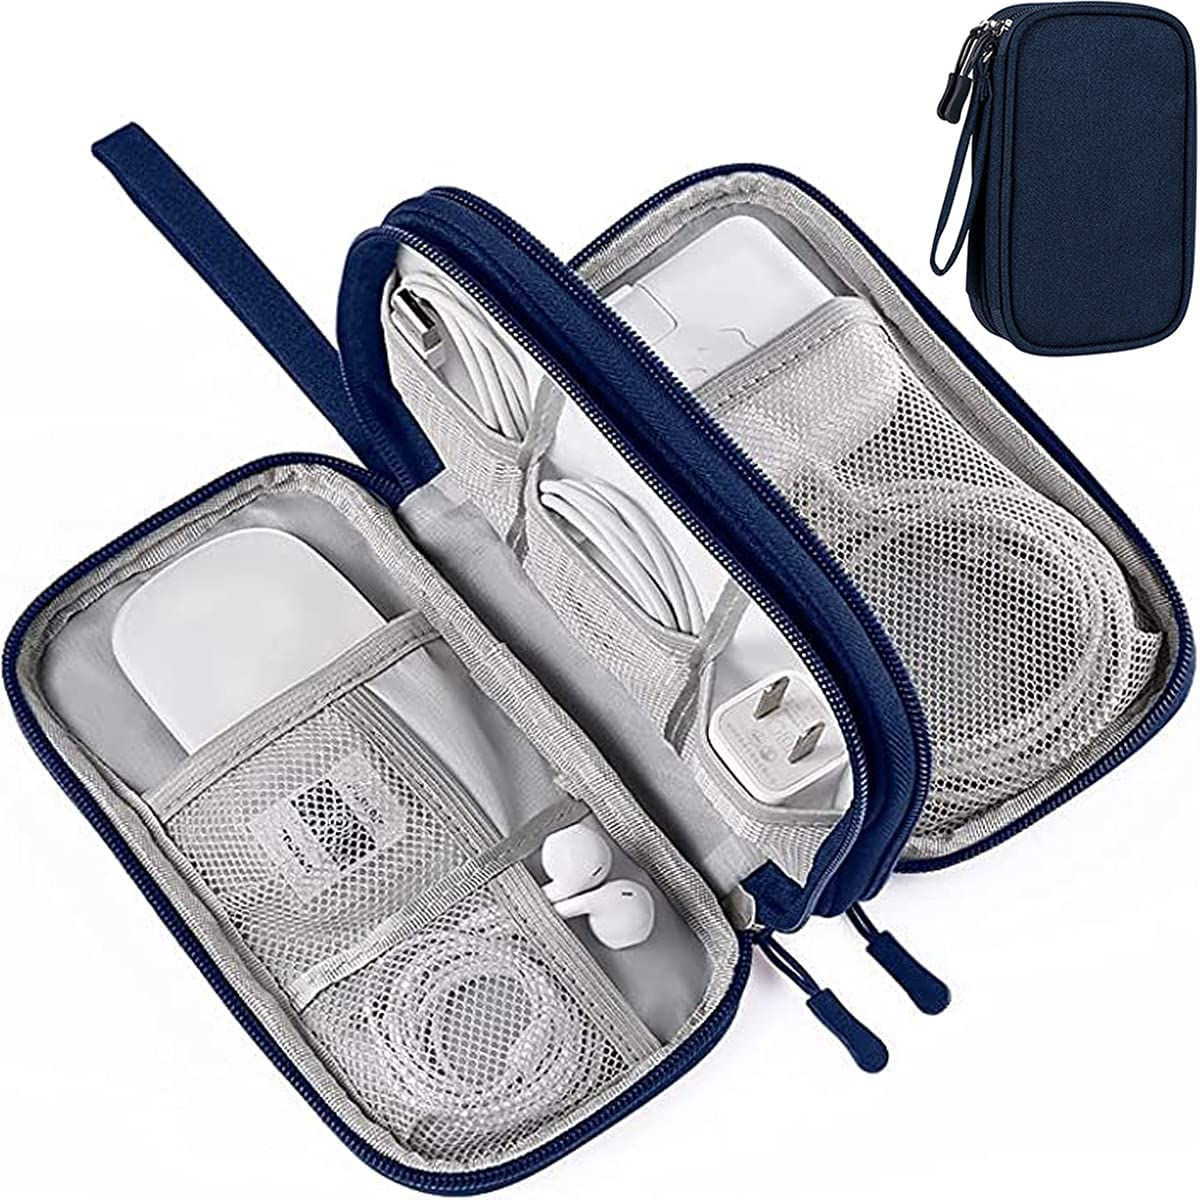 Electronic Organizer Travel Cable Organizer Electronics Accessories Cases,Waterproof Portable Cable Organizer Bag, Travel Gear Carry Bag for Cord, Charger, Flash Drive, Phone, SD Card, Navy Blue